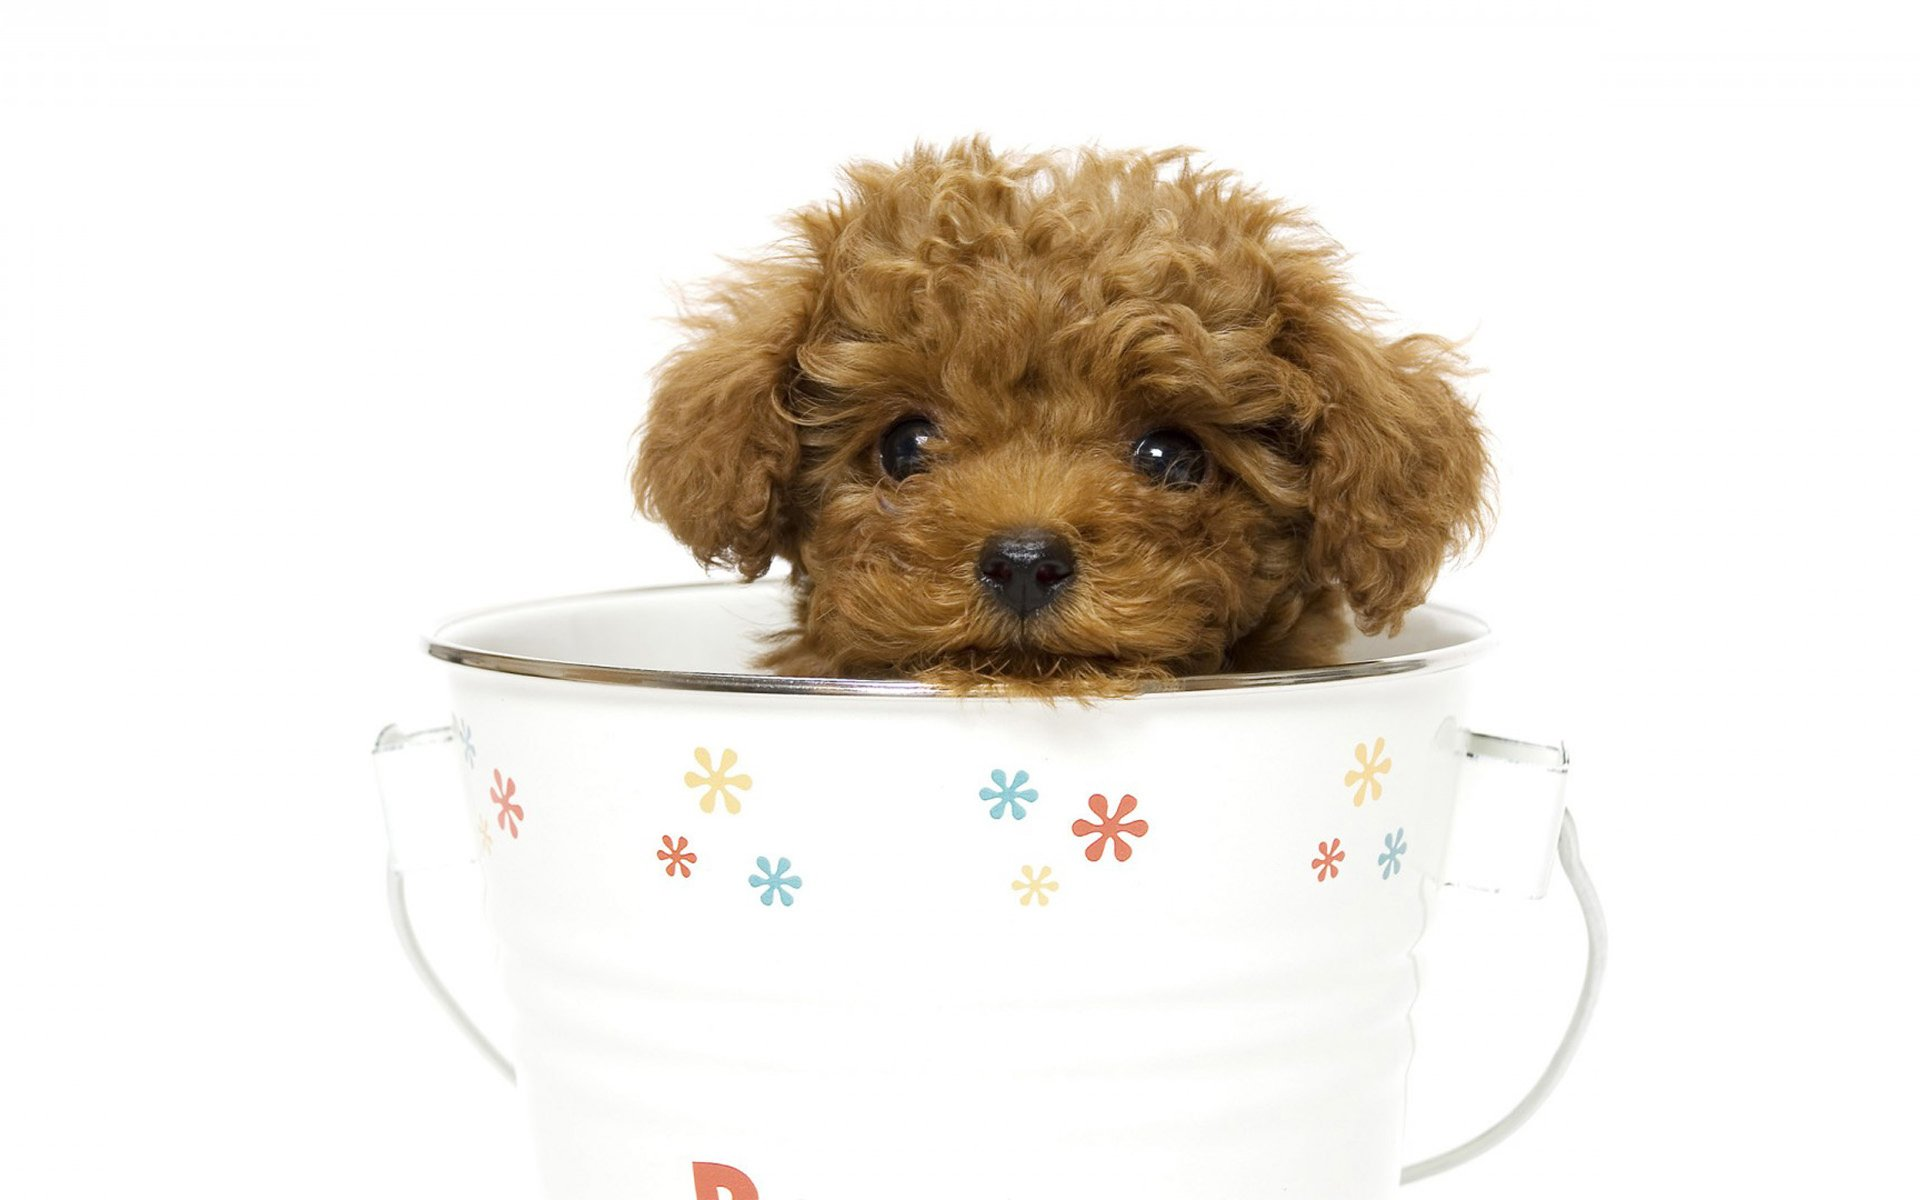 Teacup Poodle In A Teacup Hd Wallpaper Background Image 1920x1200 Id 814118 Wallpaper Abyss